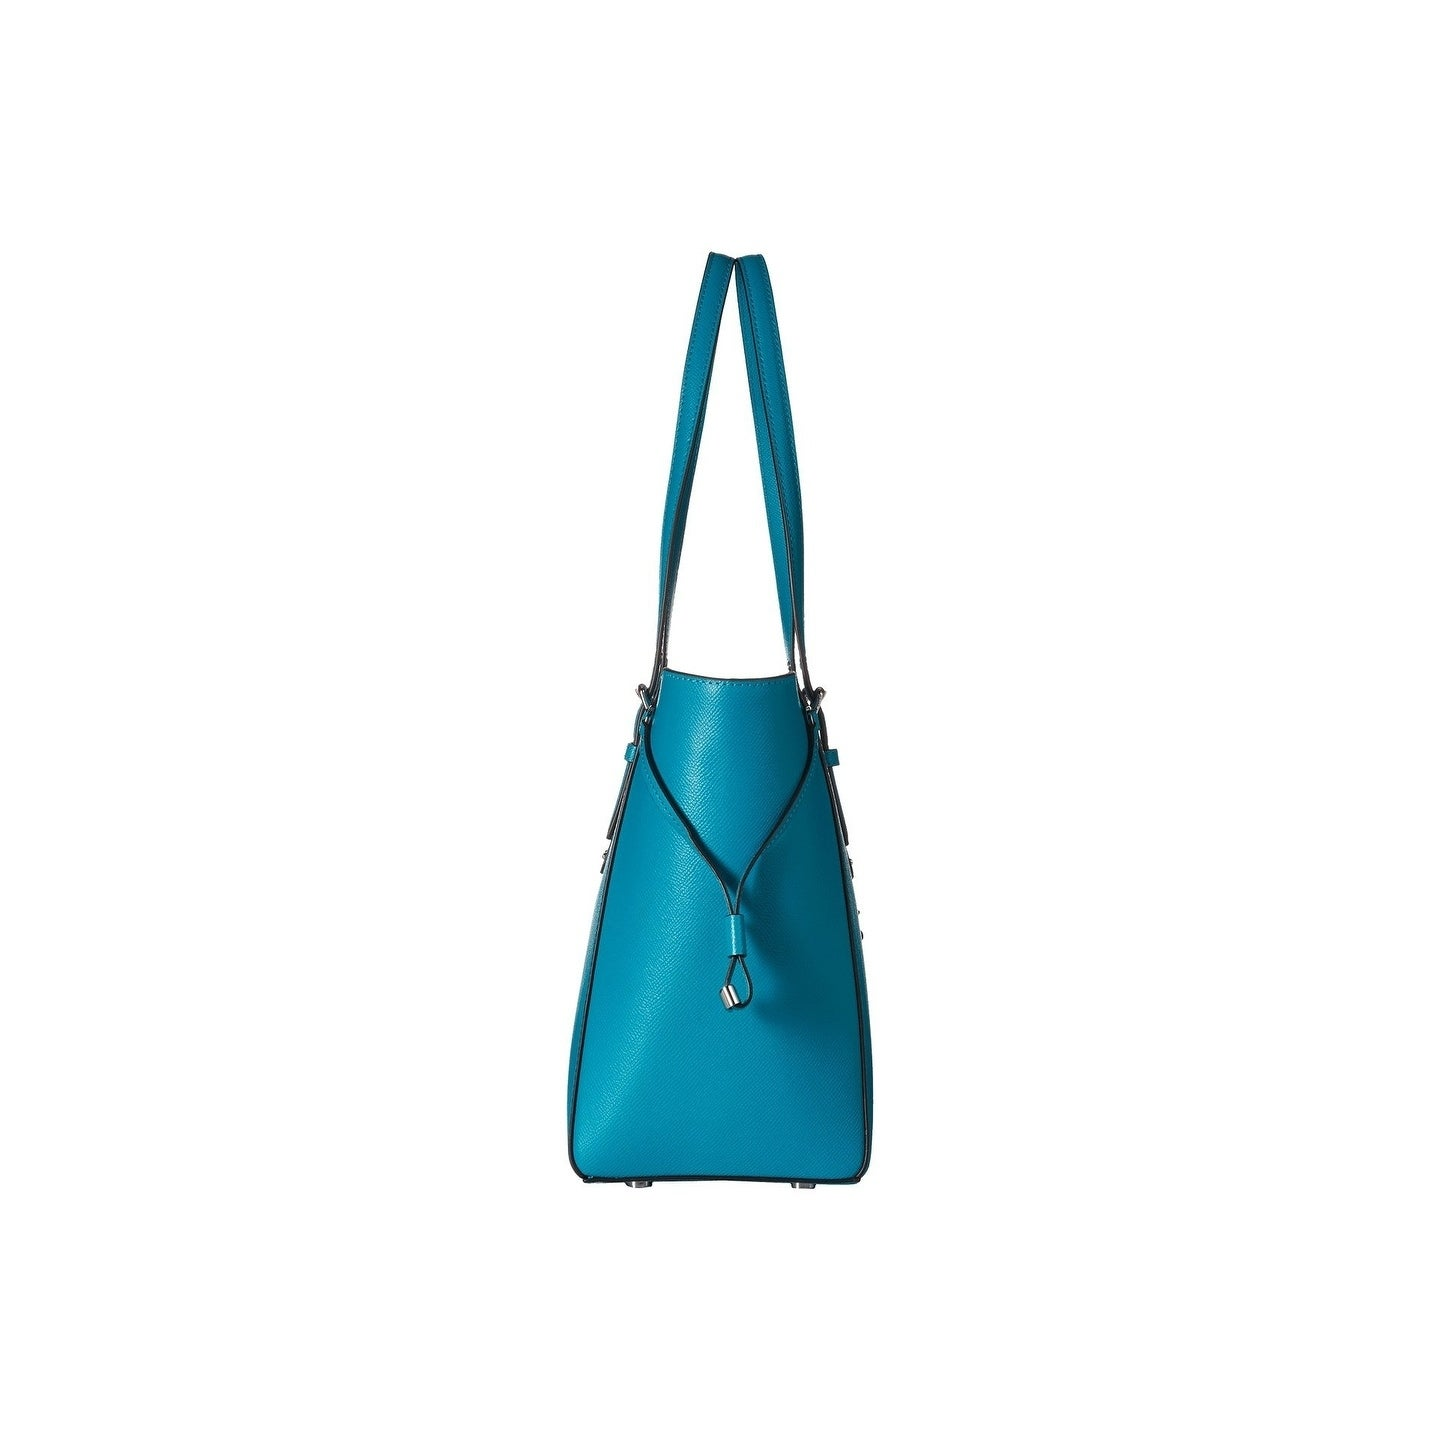 c26c386b31ccb6 Shop MICHAEL Michael Kors Voyager Medium Top Zip Tile Blue Tote Bag - On  Sale - Free Shipping Today - Overstock - 22081711